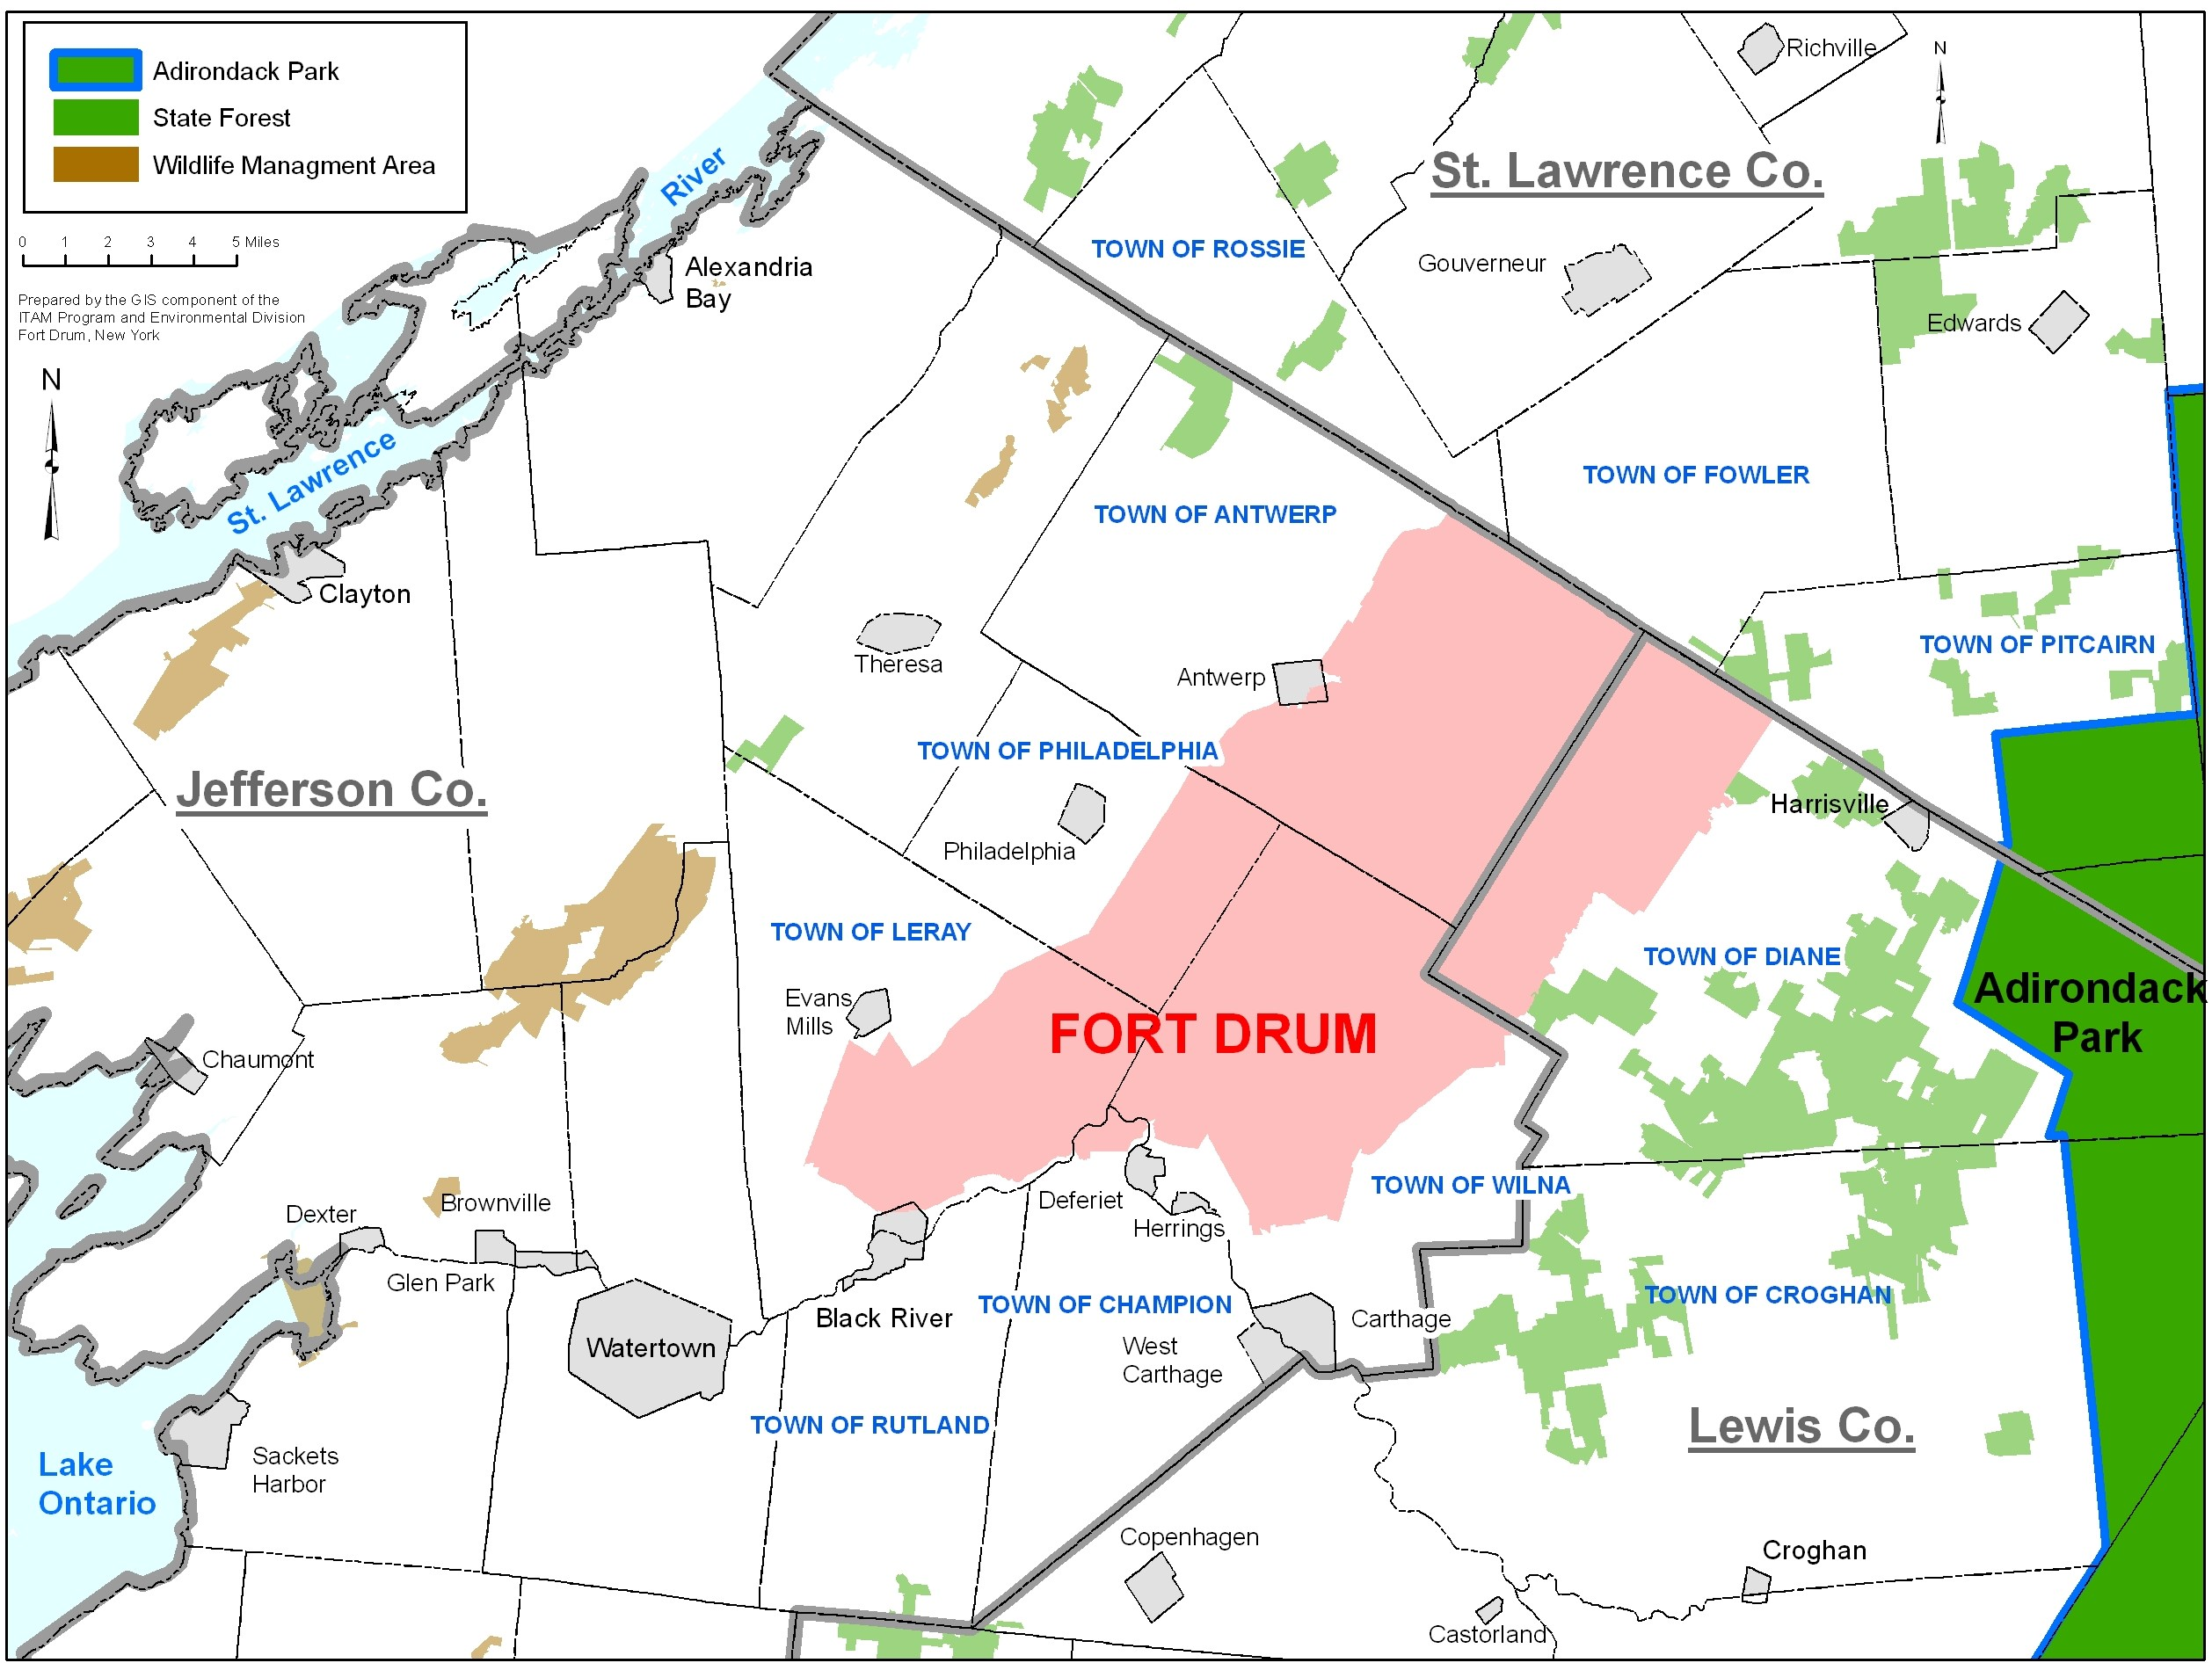 Home - Fort Drum - iSportsman  Z New York State Hunting Zone Map on